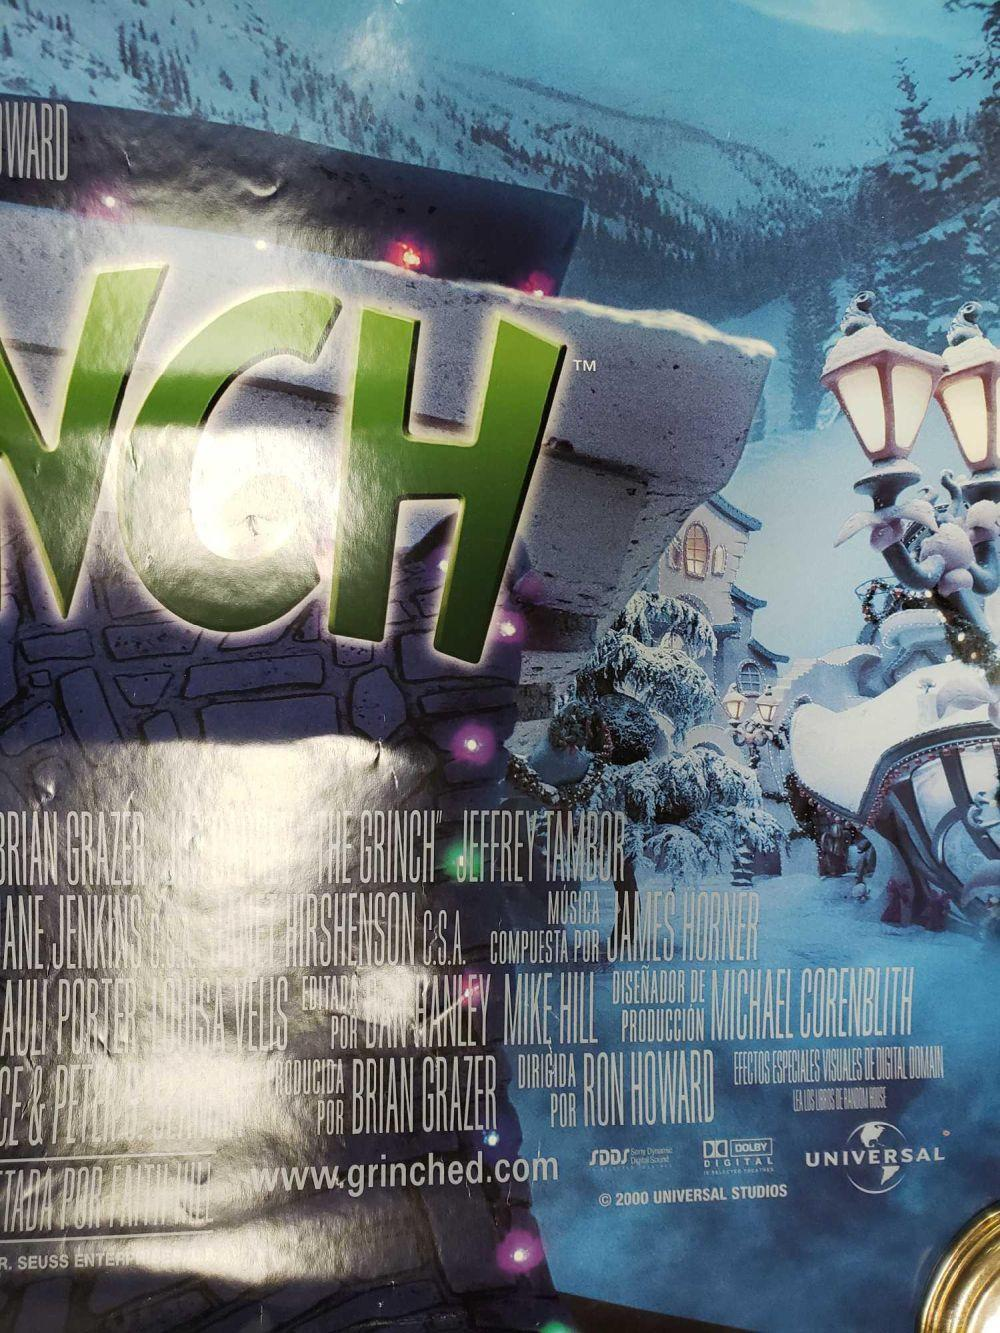 Lot 607: Spanish Language The Grinch Poster